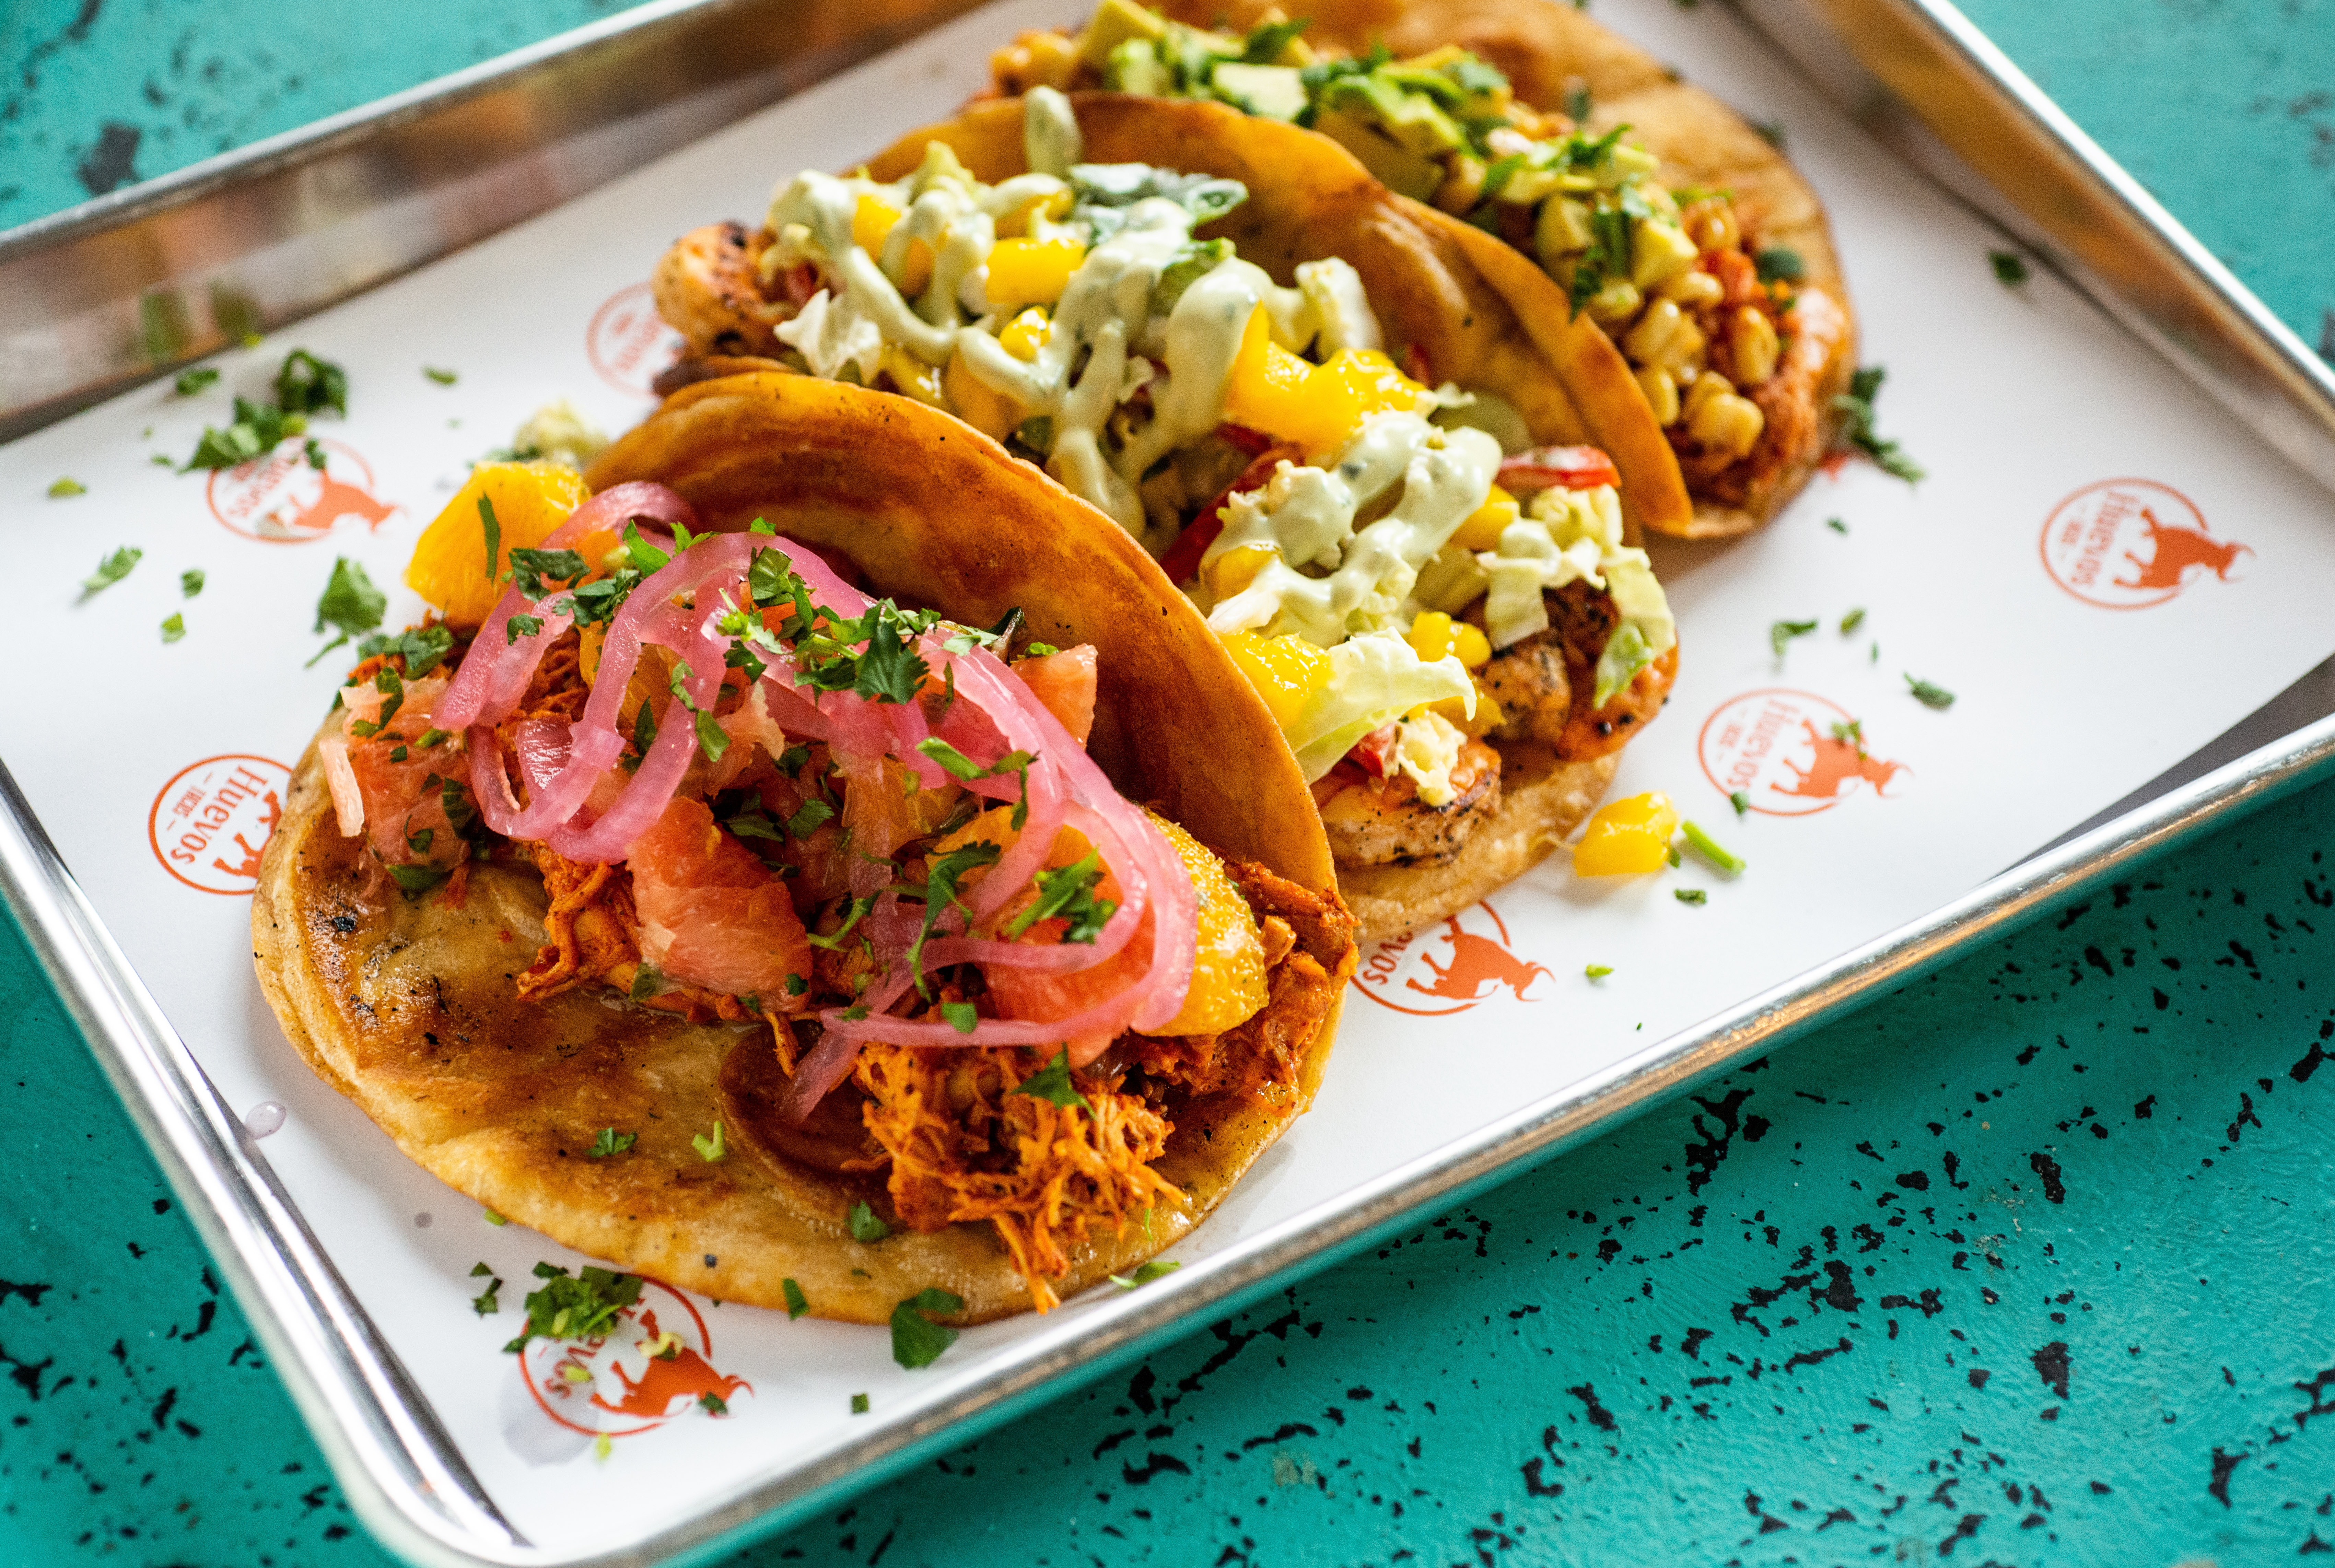 Huevos Tacos opens in former Morning Collective space